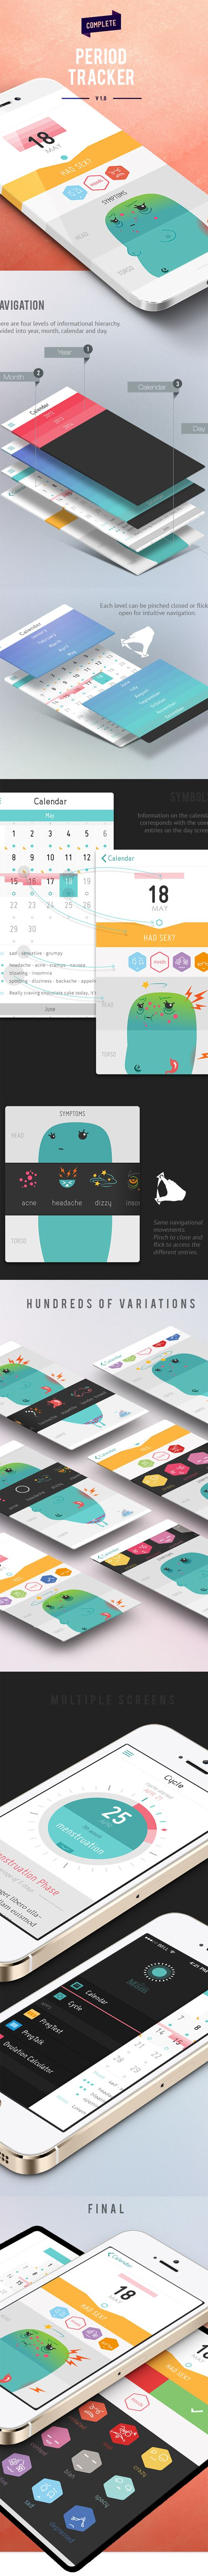 55 Amazing Mobile App UI Designs with Ultimate User Experience - 12